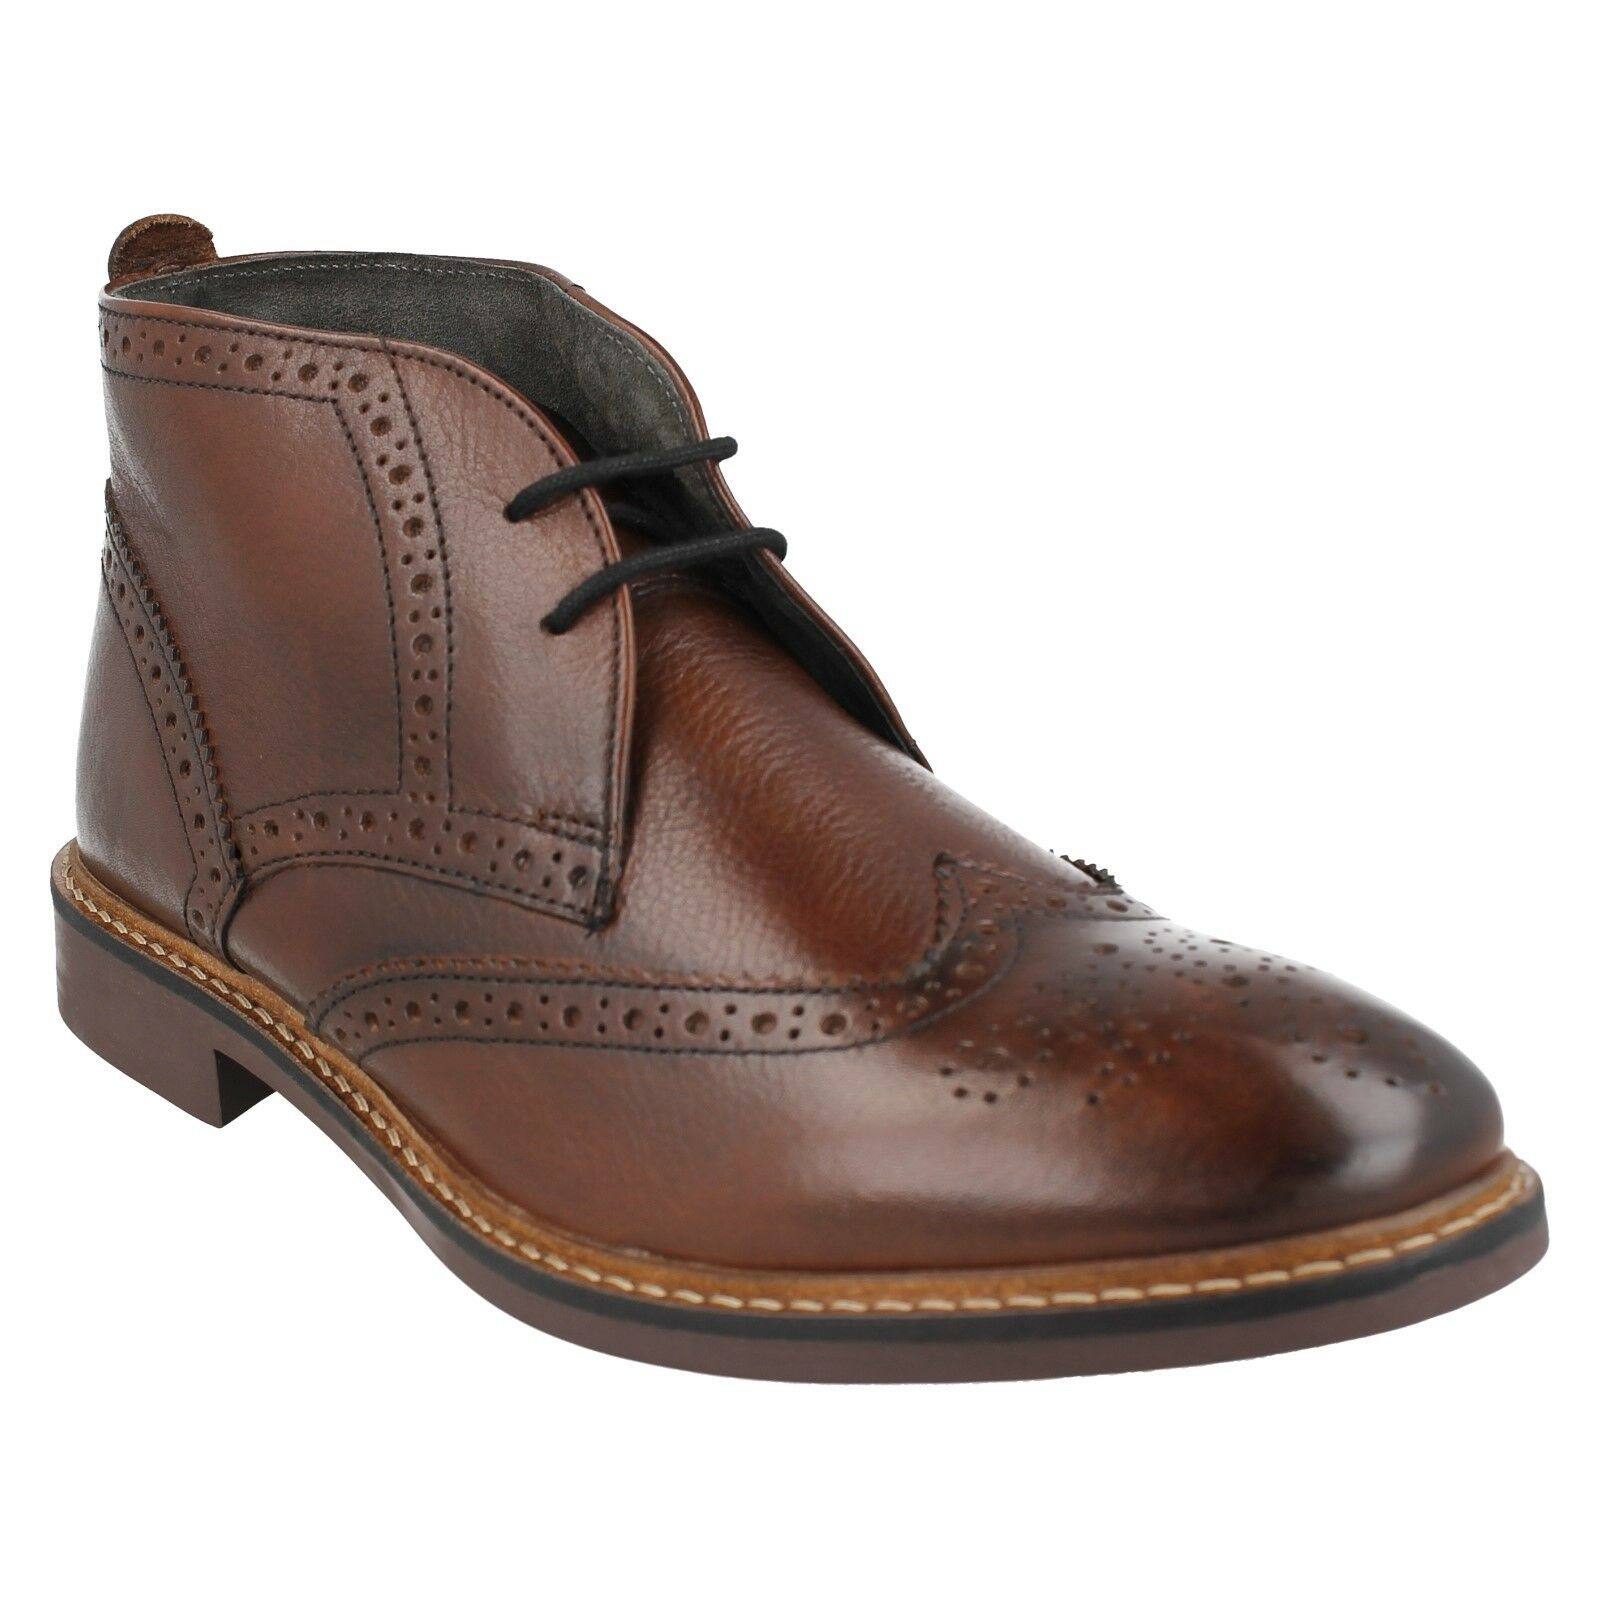 MENS BROWN LEATHER FORMAL SMART BROGUE ANKLE BOOTS BASE LONDON TRICK SIZE 7 - 12